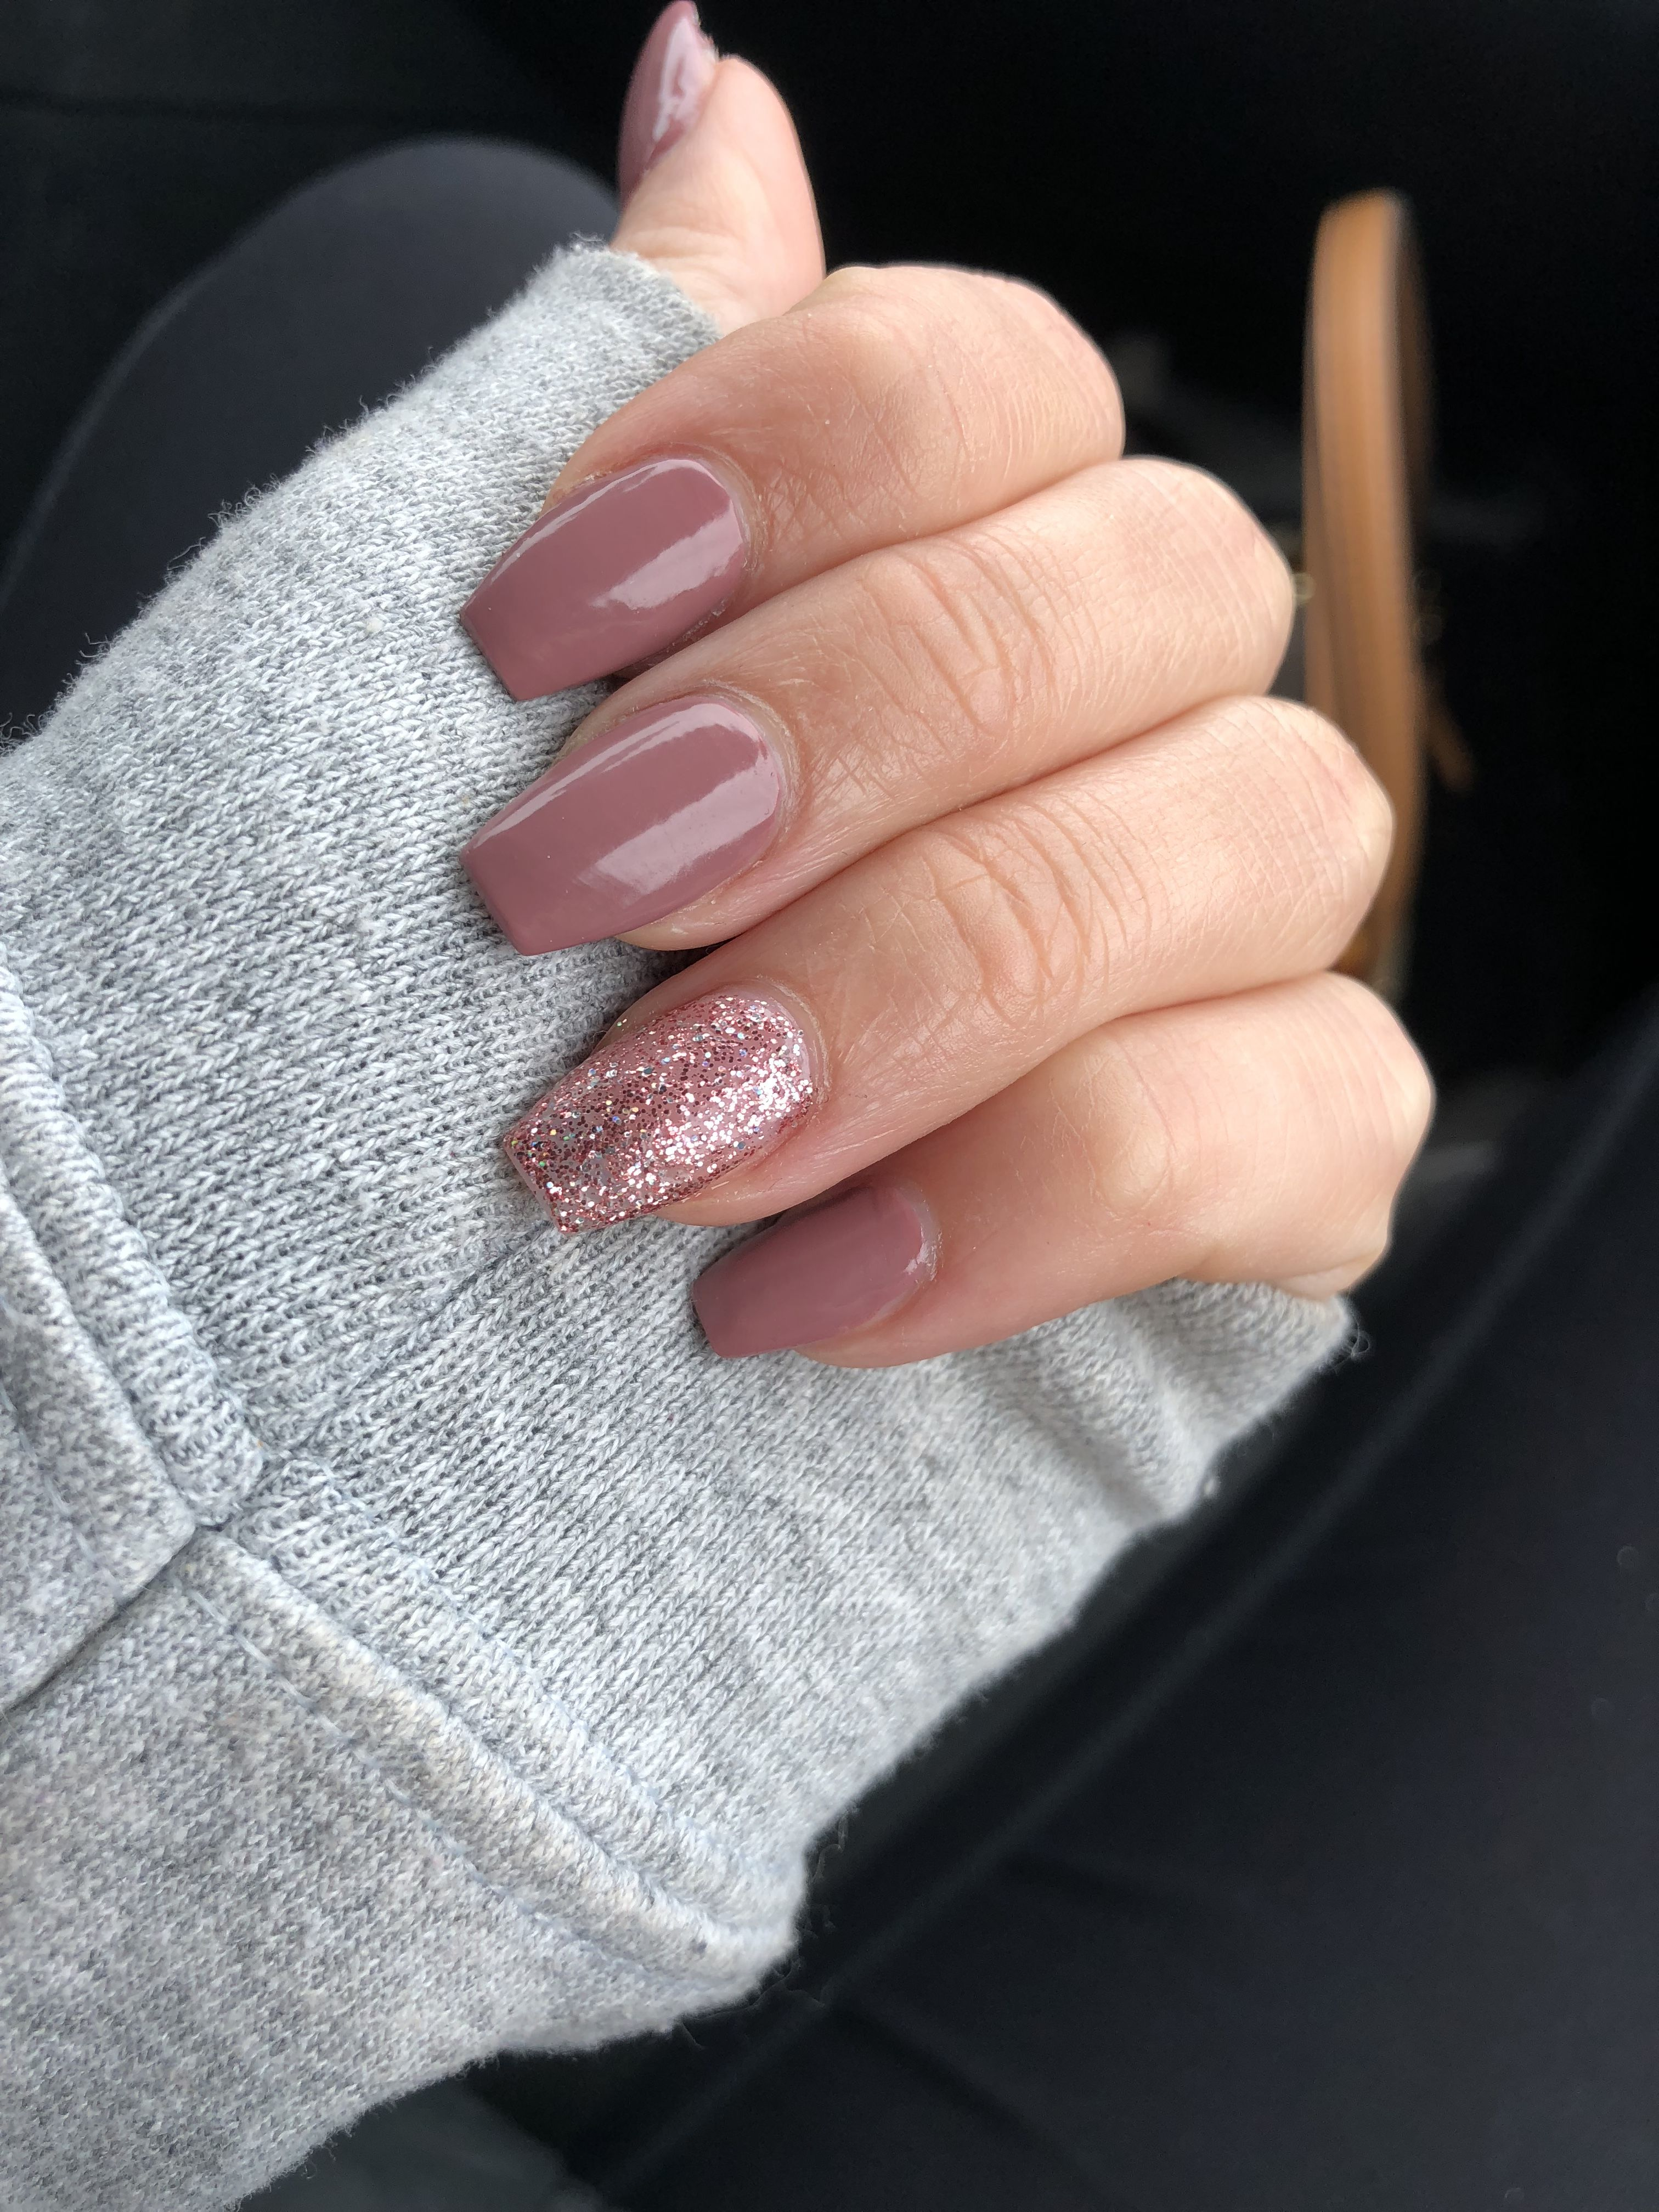 Acrylic Coffin Nails Mauve Pink Glitter Pink Glitter Nails Mauve Nails Glitter Nails Acrylic